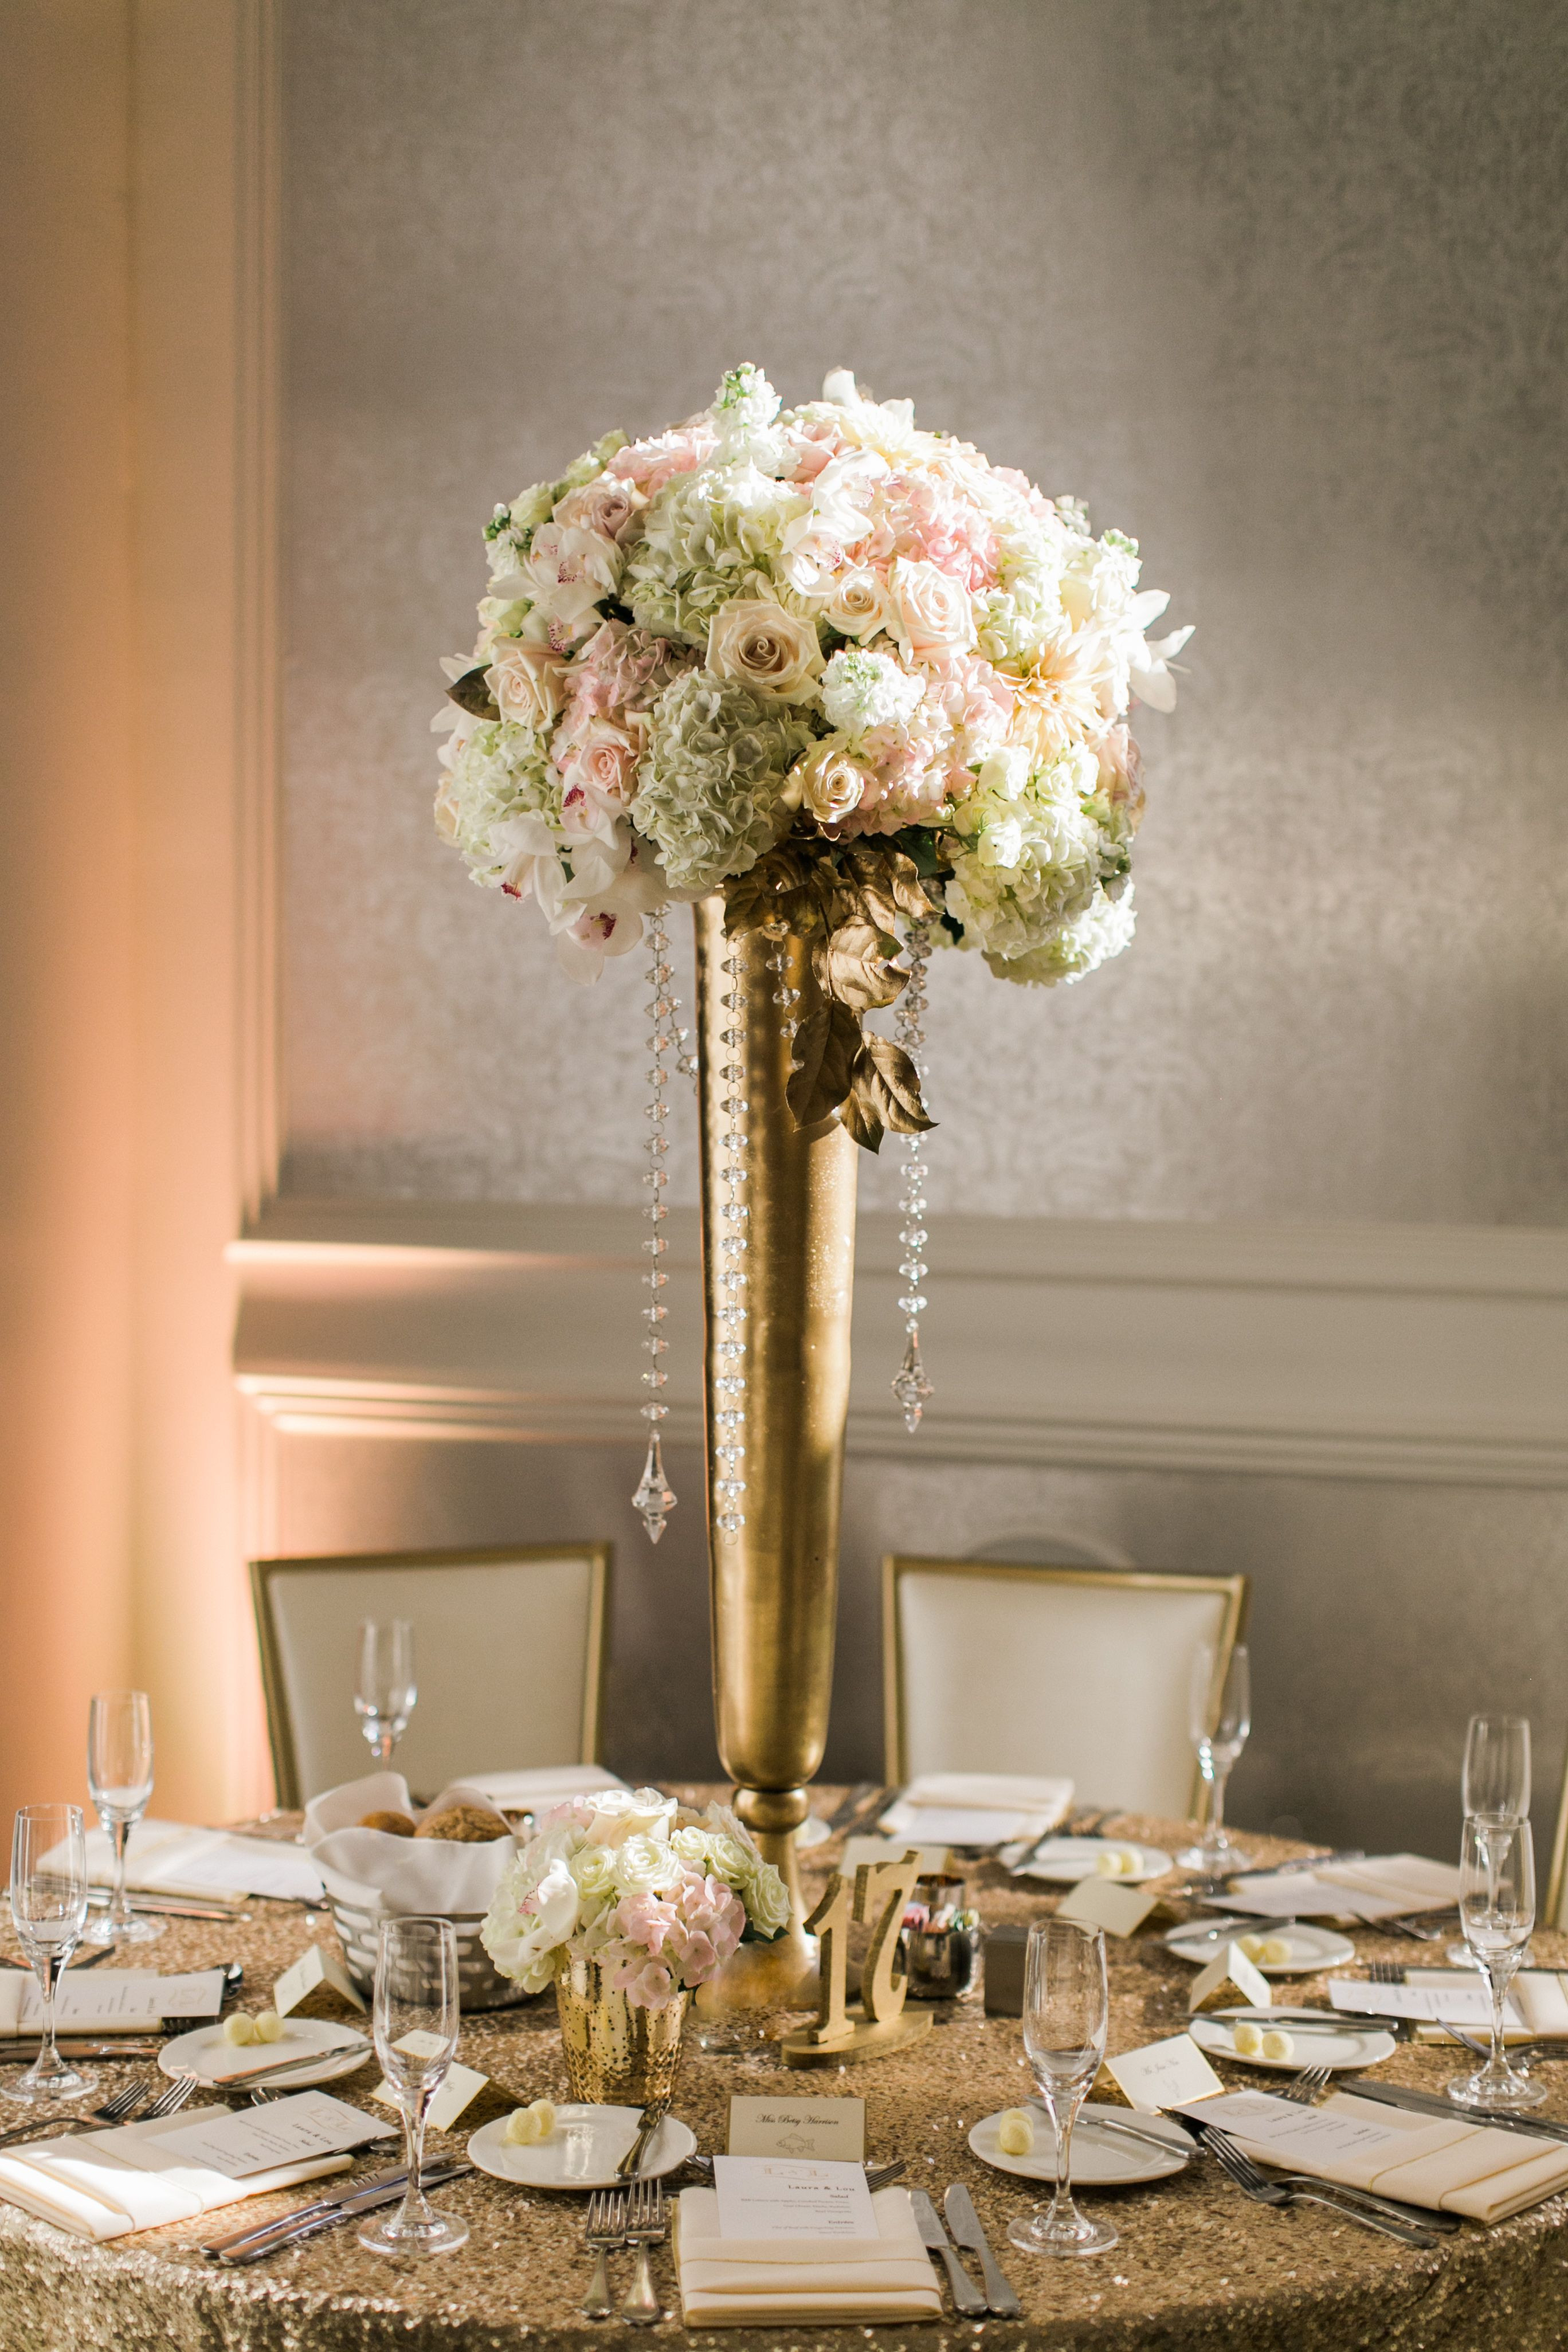 rhinestone vase centerpieces of sweet looking tall vase centerpiece party decorations surprising within extraordinary tall vase centerpiece gold bridal ideas pinterest scheme of arrangements centerpieces diy